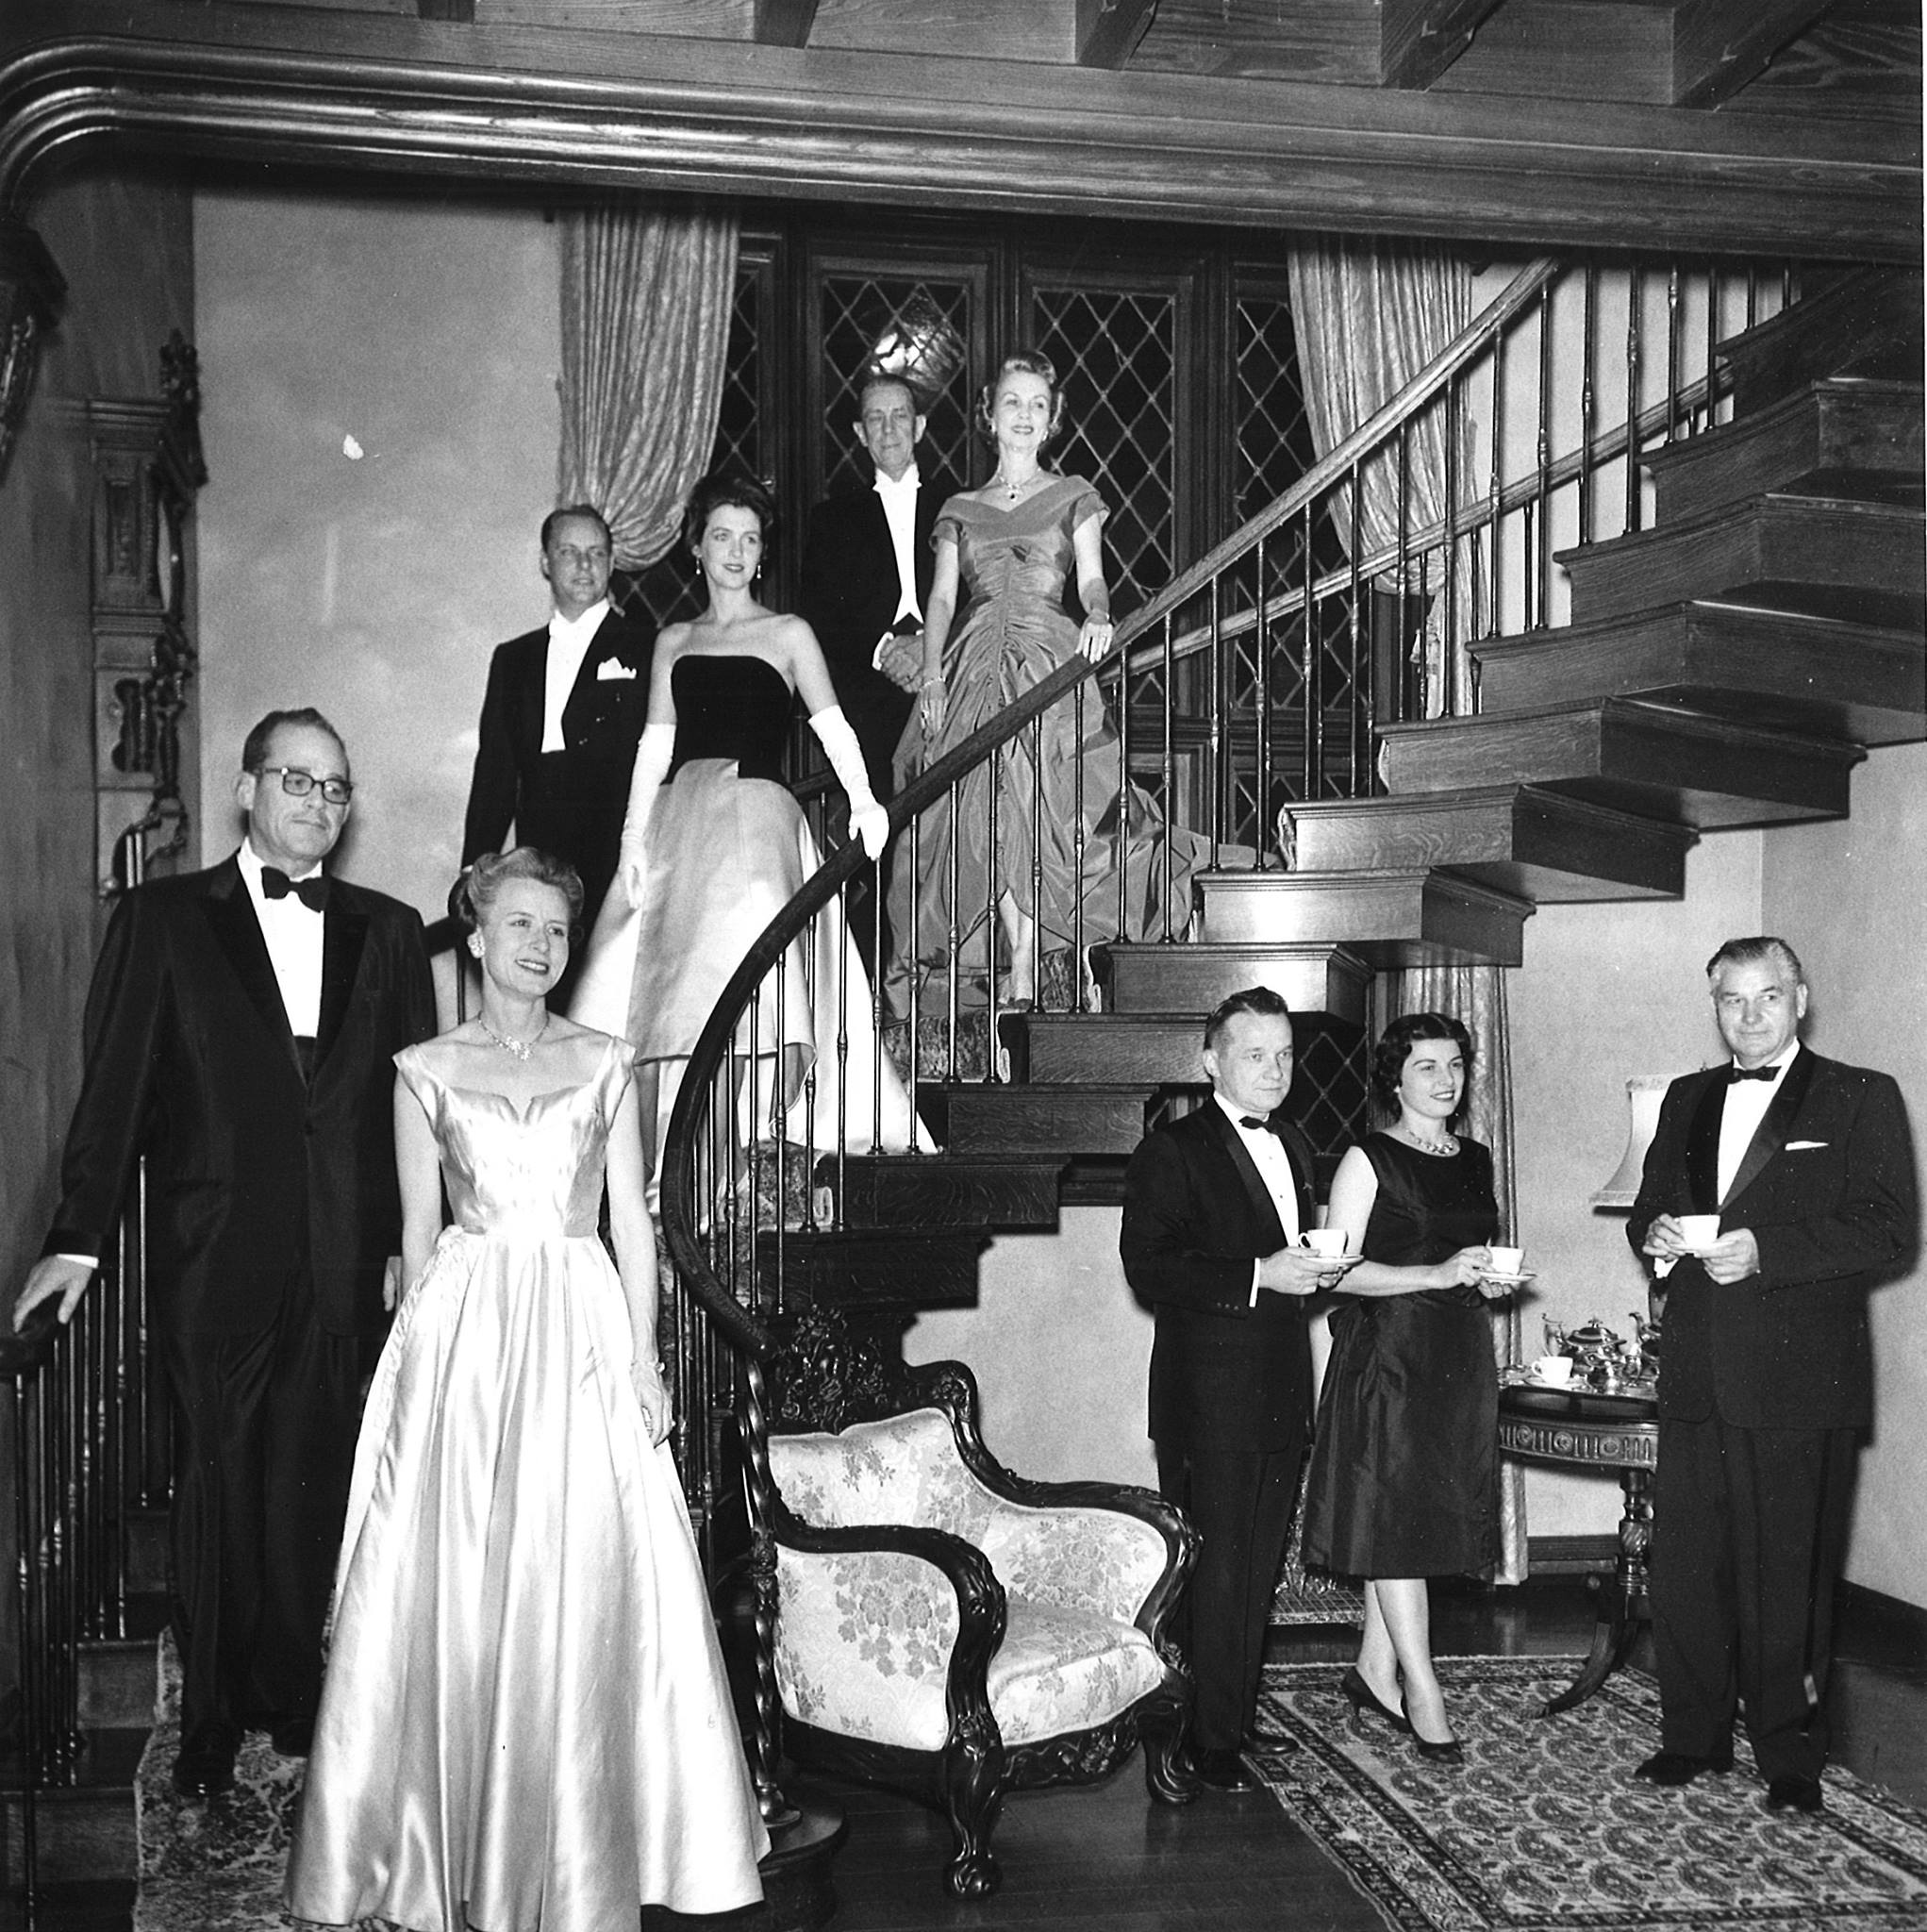 Sybil Harrington at one of her balls (Pictured in Green Dior dress, highest on staircase)